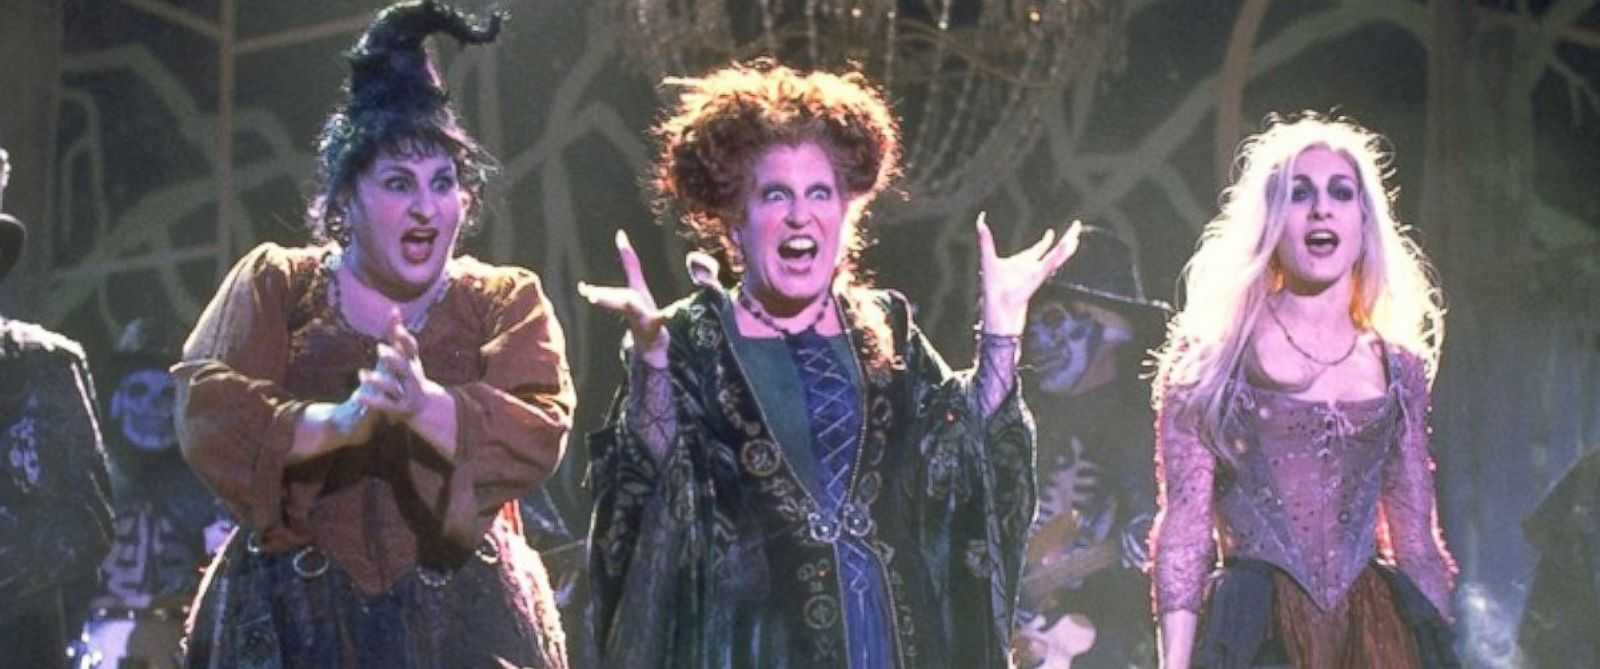 PHOTO: The Sanderson Sisters are 17th century witches who were conjured up by unsuspecting pranksters in present-day Salem.